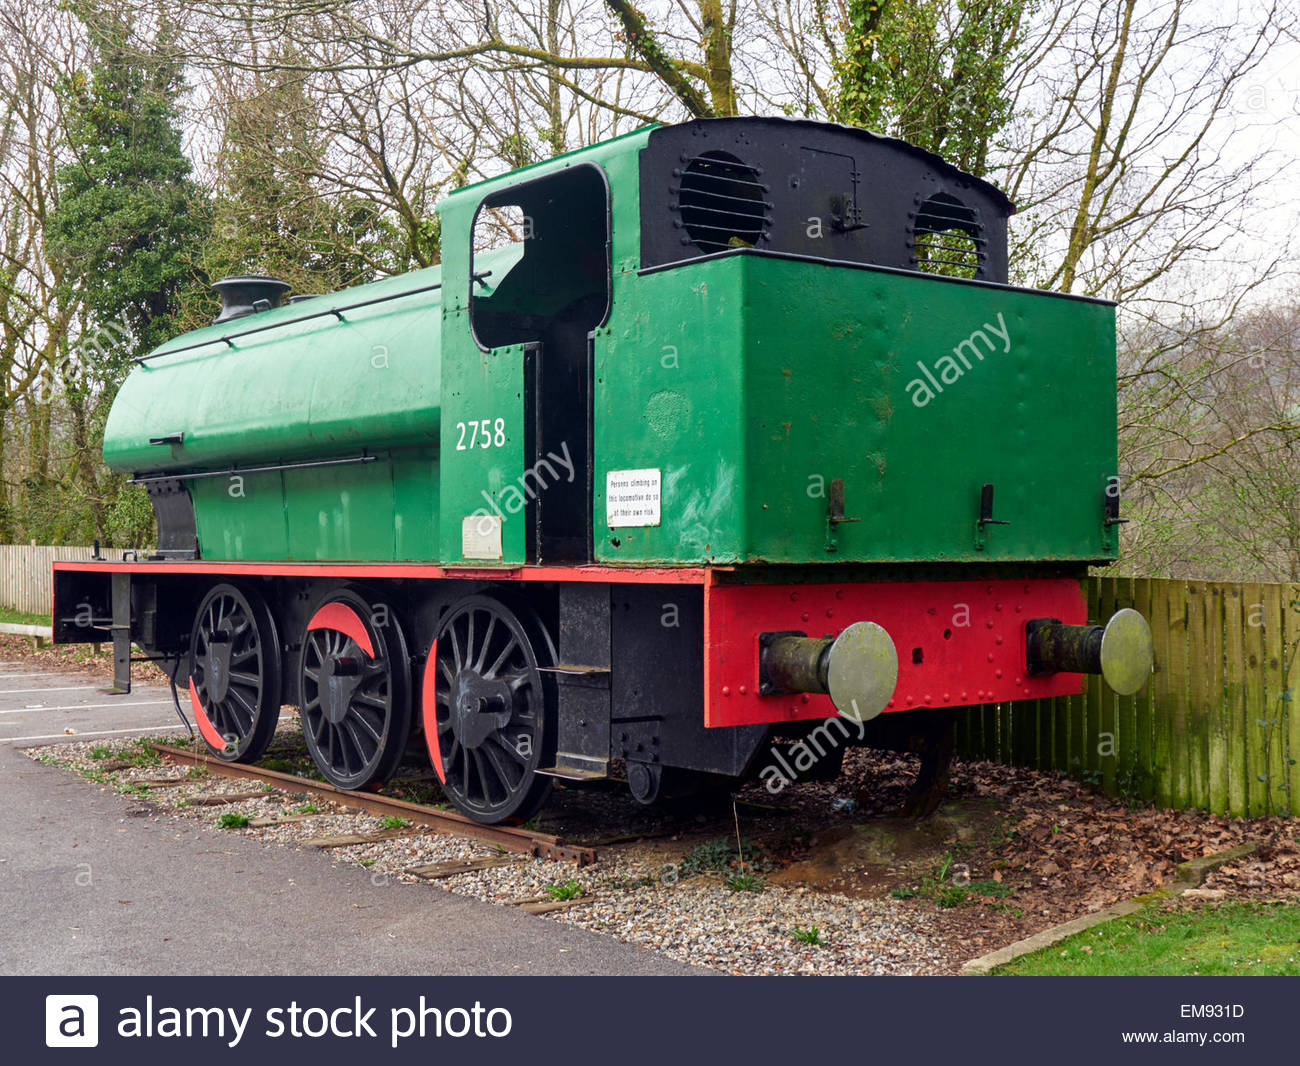 a green and red saddle tank steam locomotive 2758 in crynant colliery car  park near neath in south wales